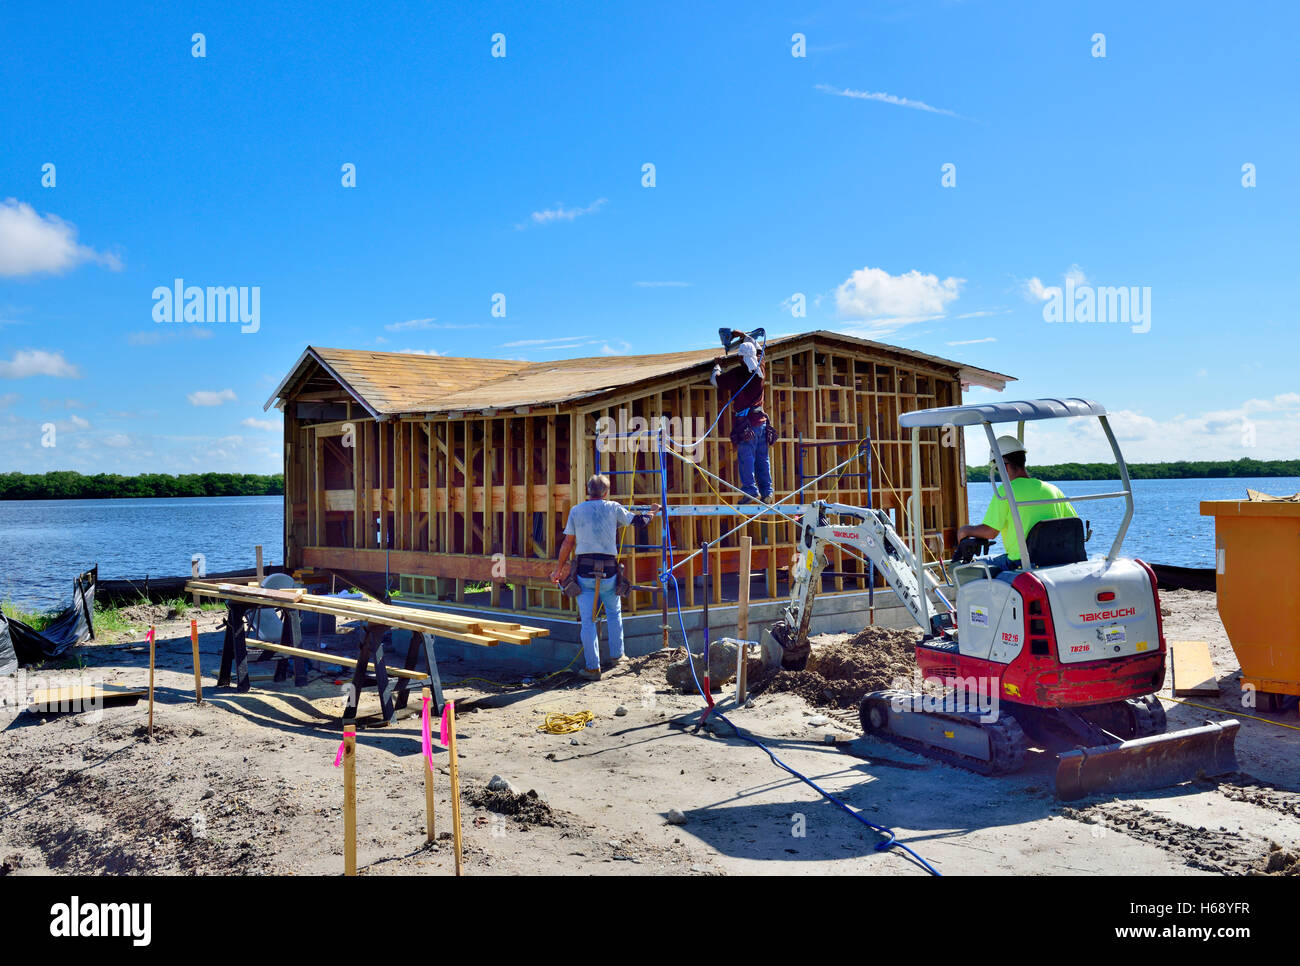 Timber frame construction stock photos timber frame for Wood frame house in florida